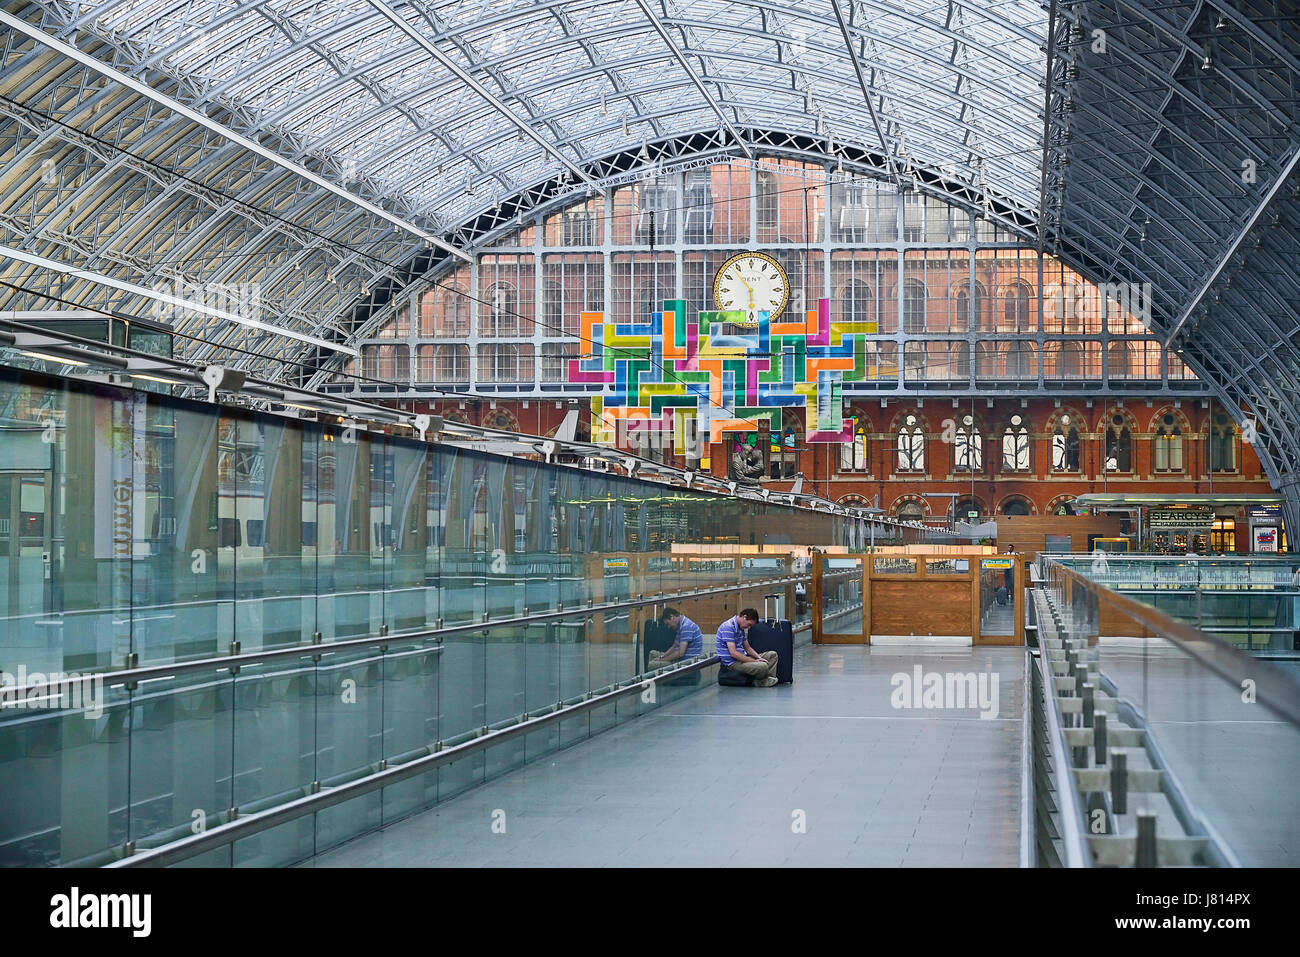 England, London, St Pancras railway station on Euston Road, man with suitcase sits on concourse awaiting his train. Stock Photo